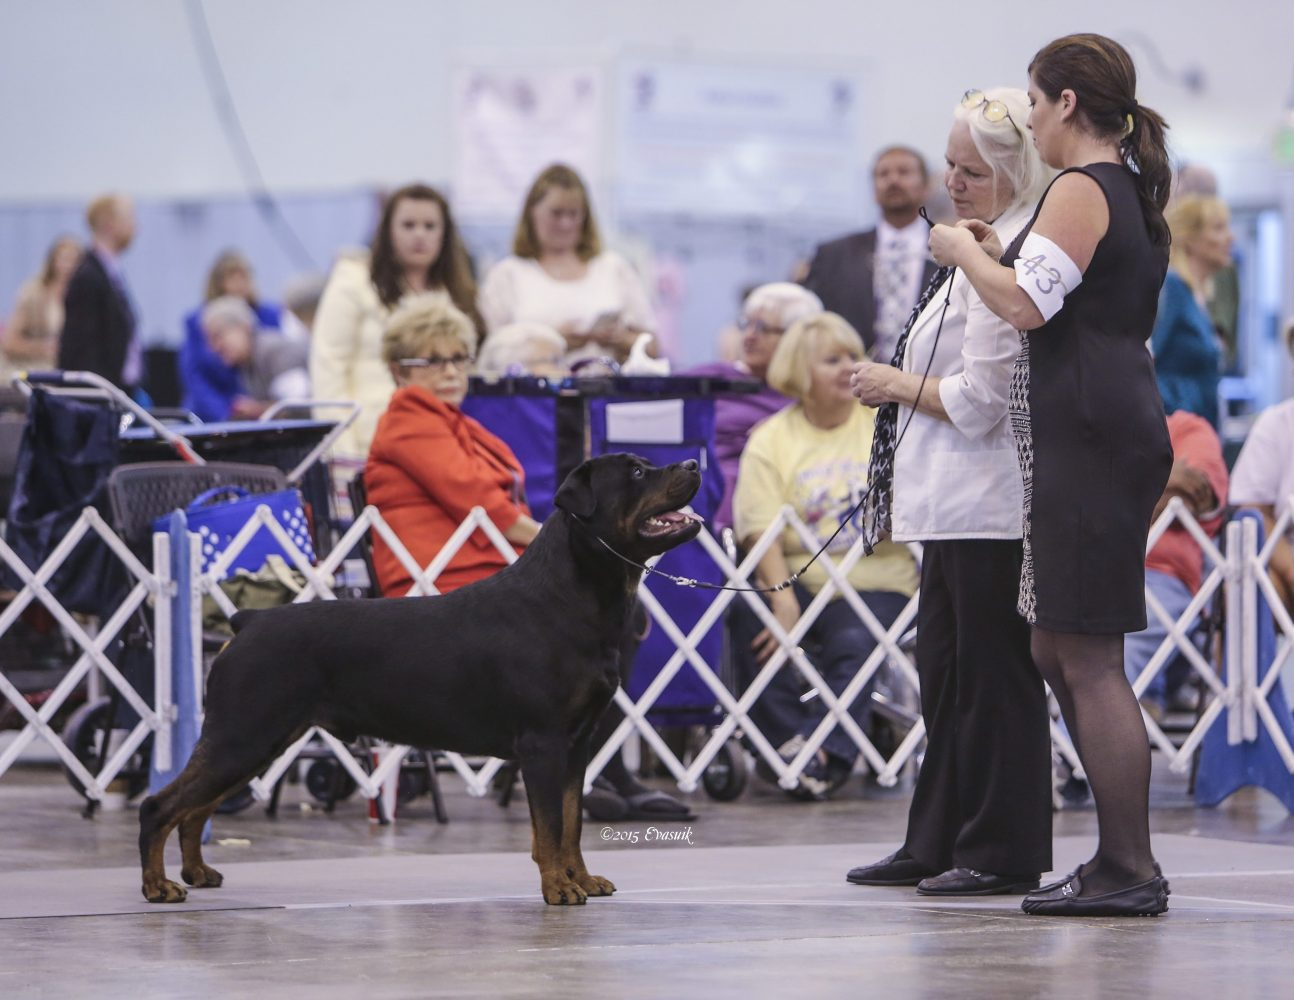 Wilson and handler at a dog show